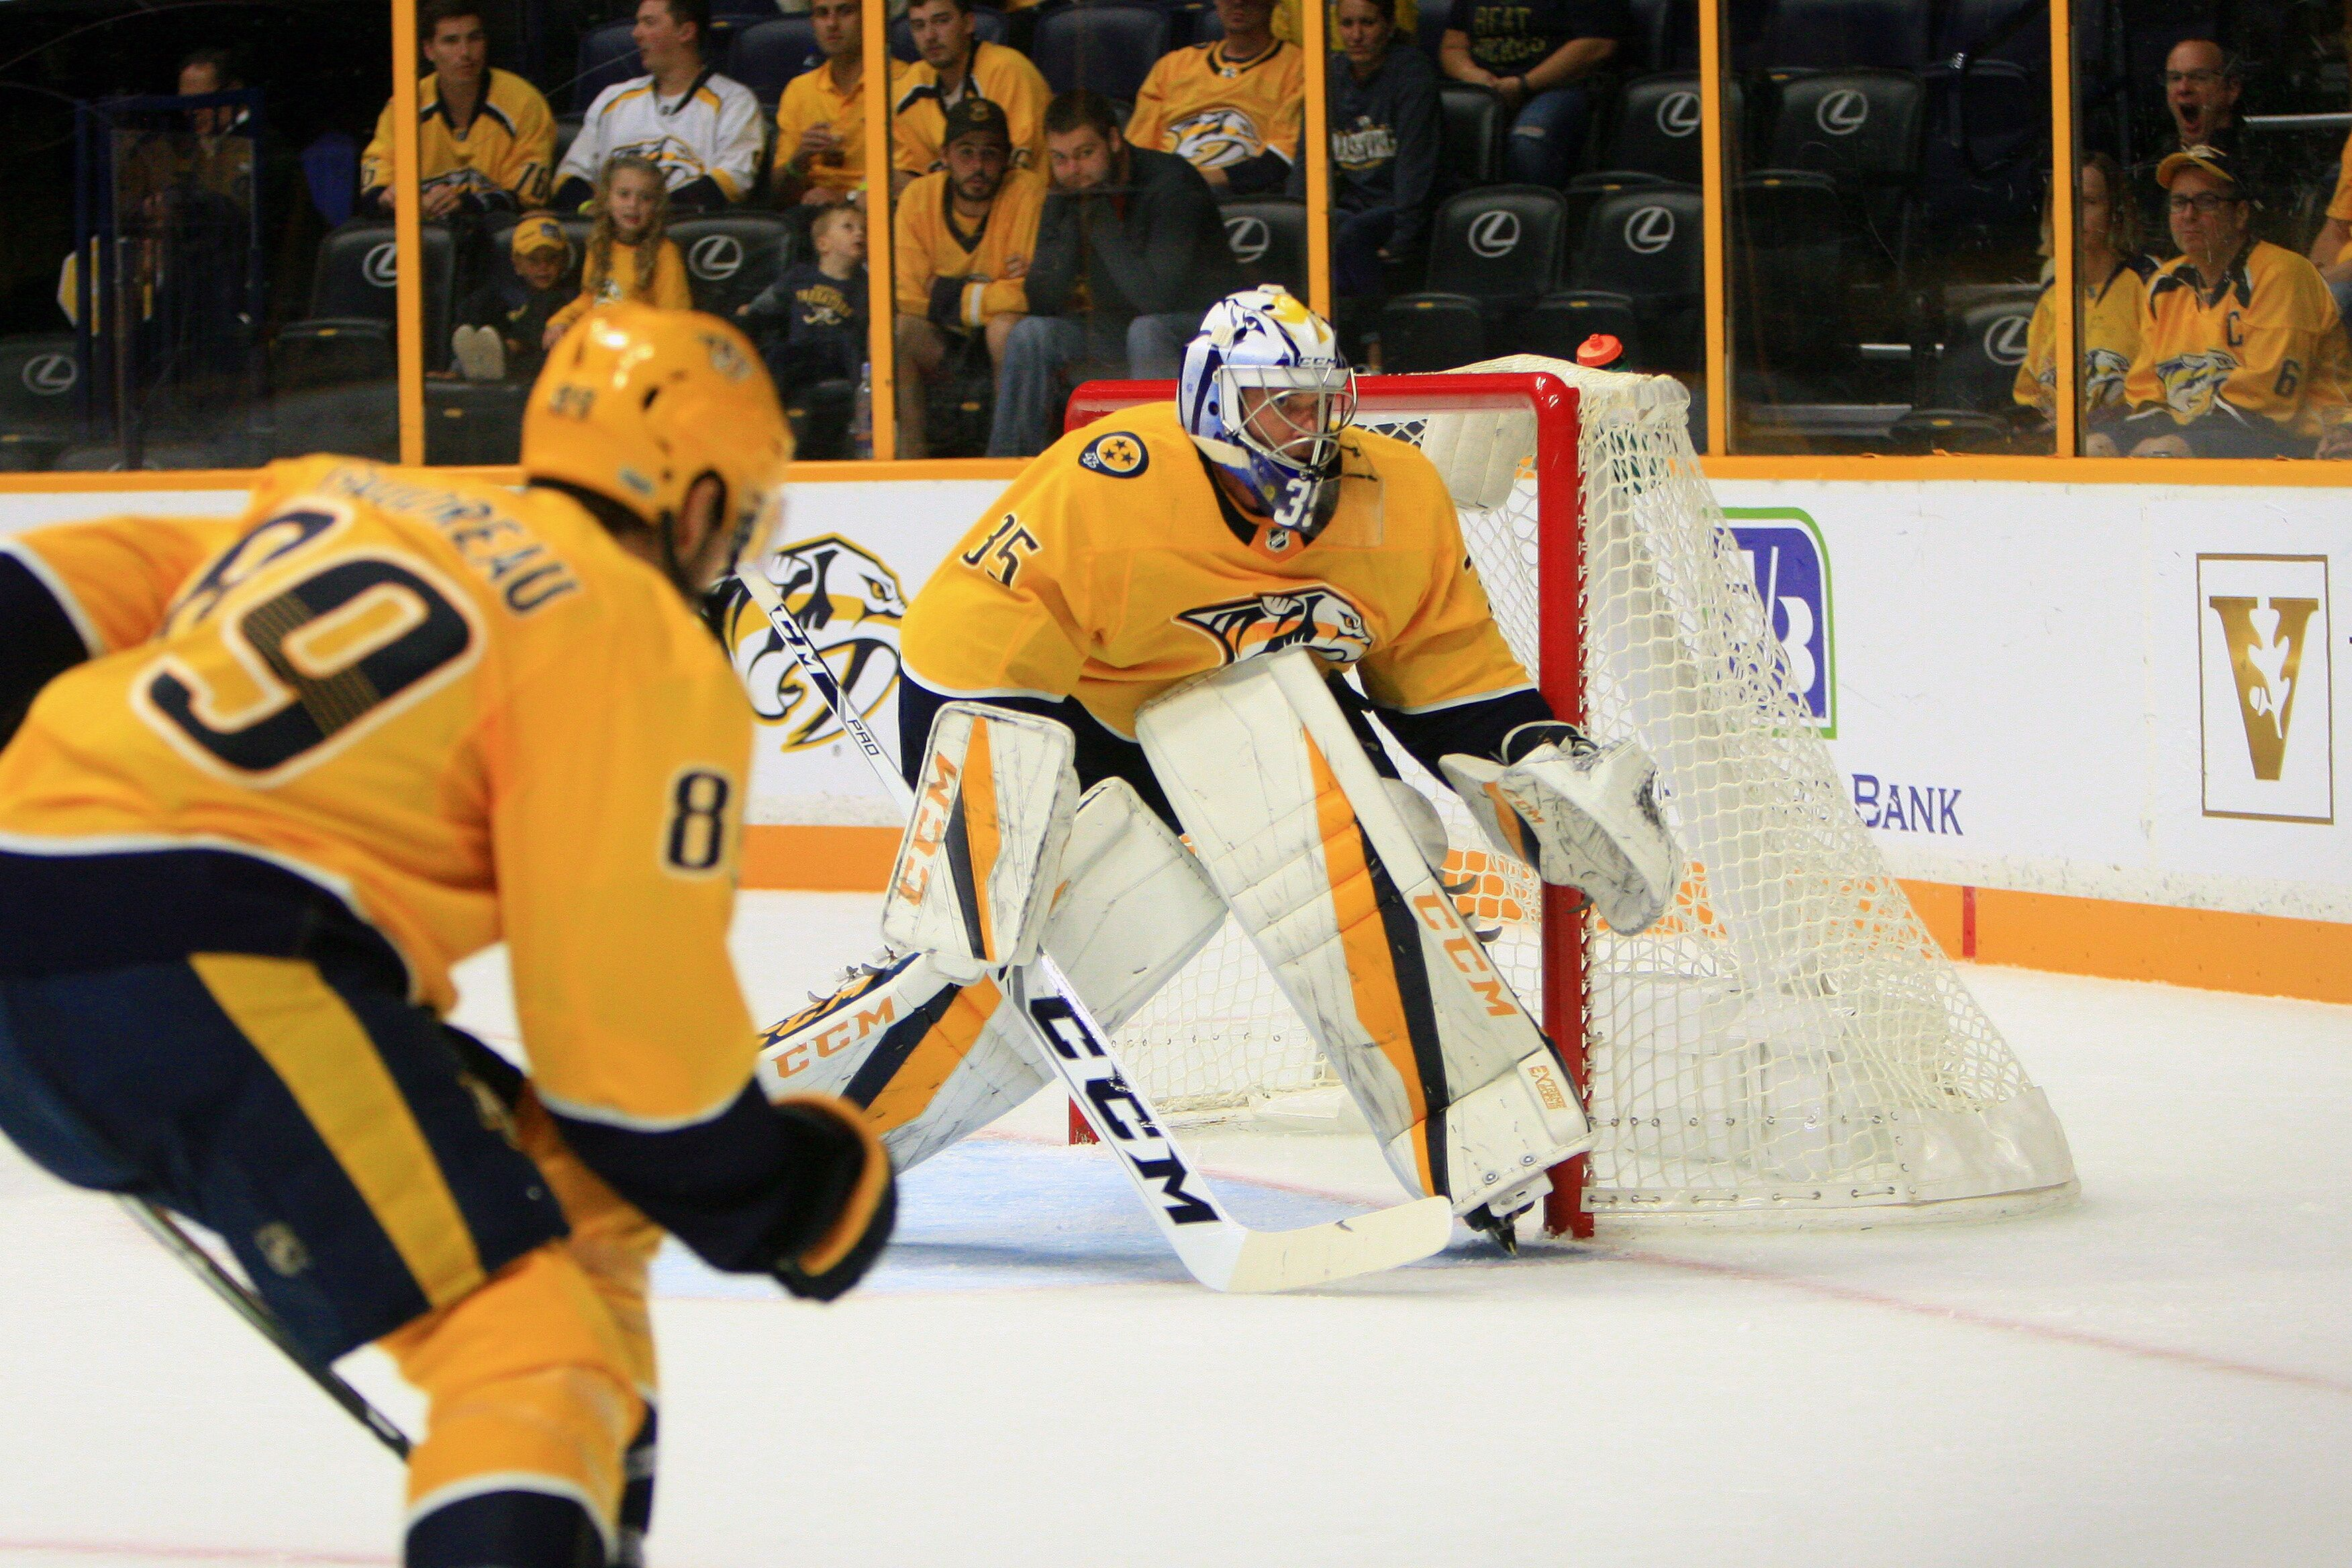 849844700-nhl-sep-19-preseason-panthers-at-predators.jpg